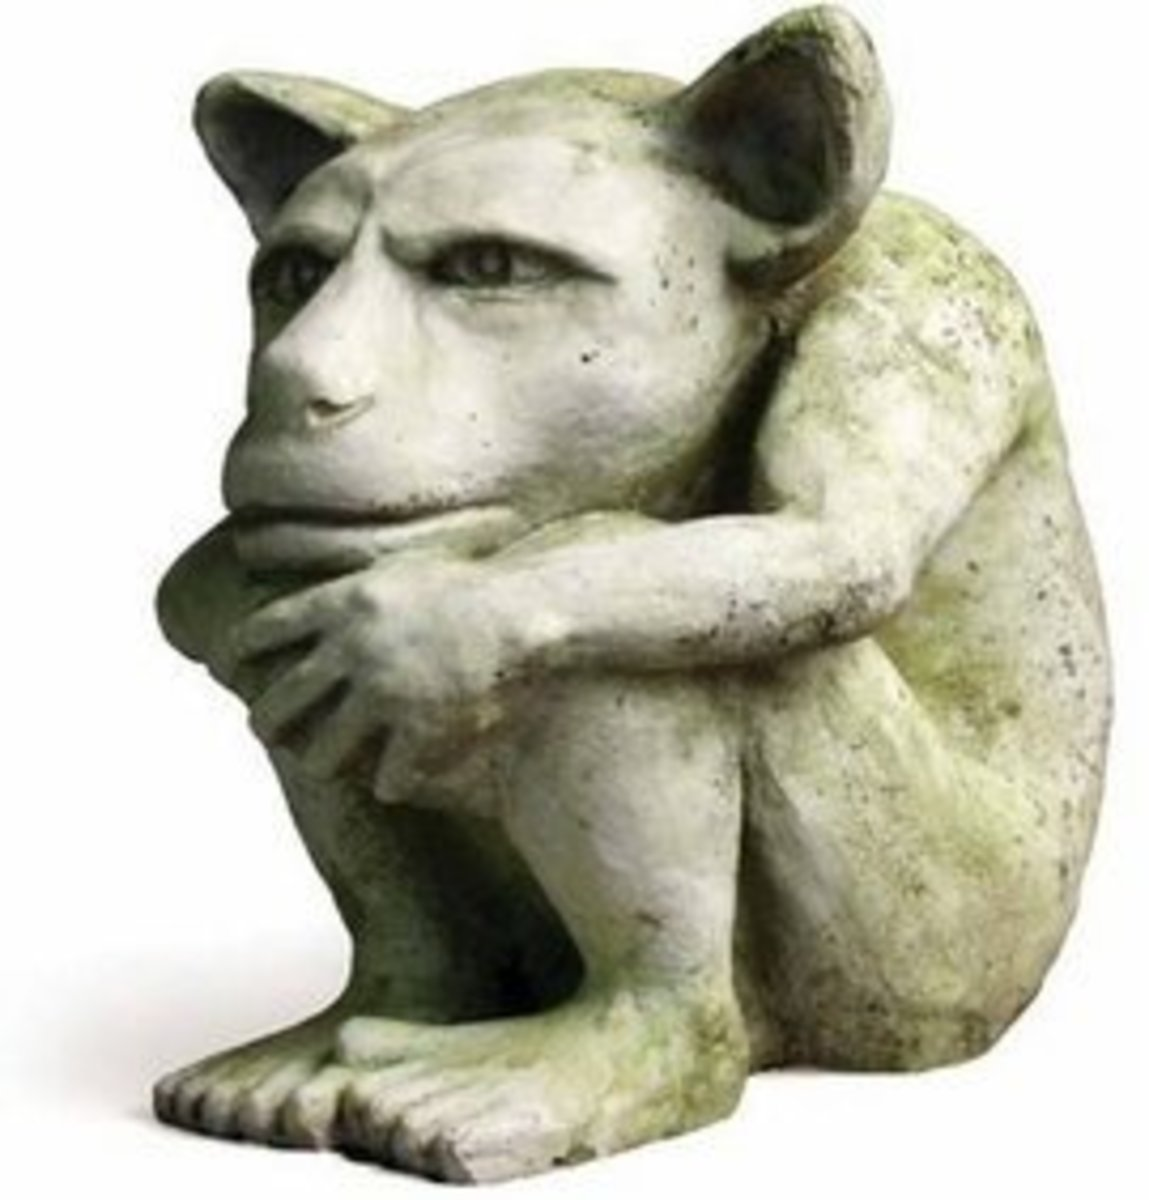 My Favorite Gargoyle Statues for Modern Garden Design